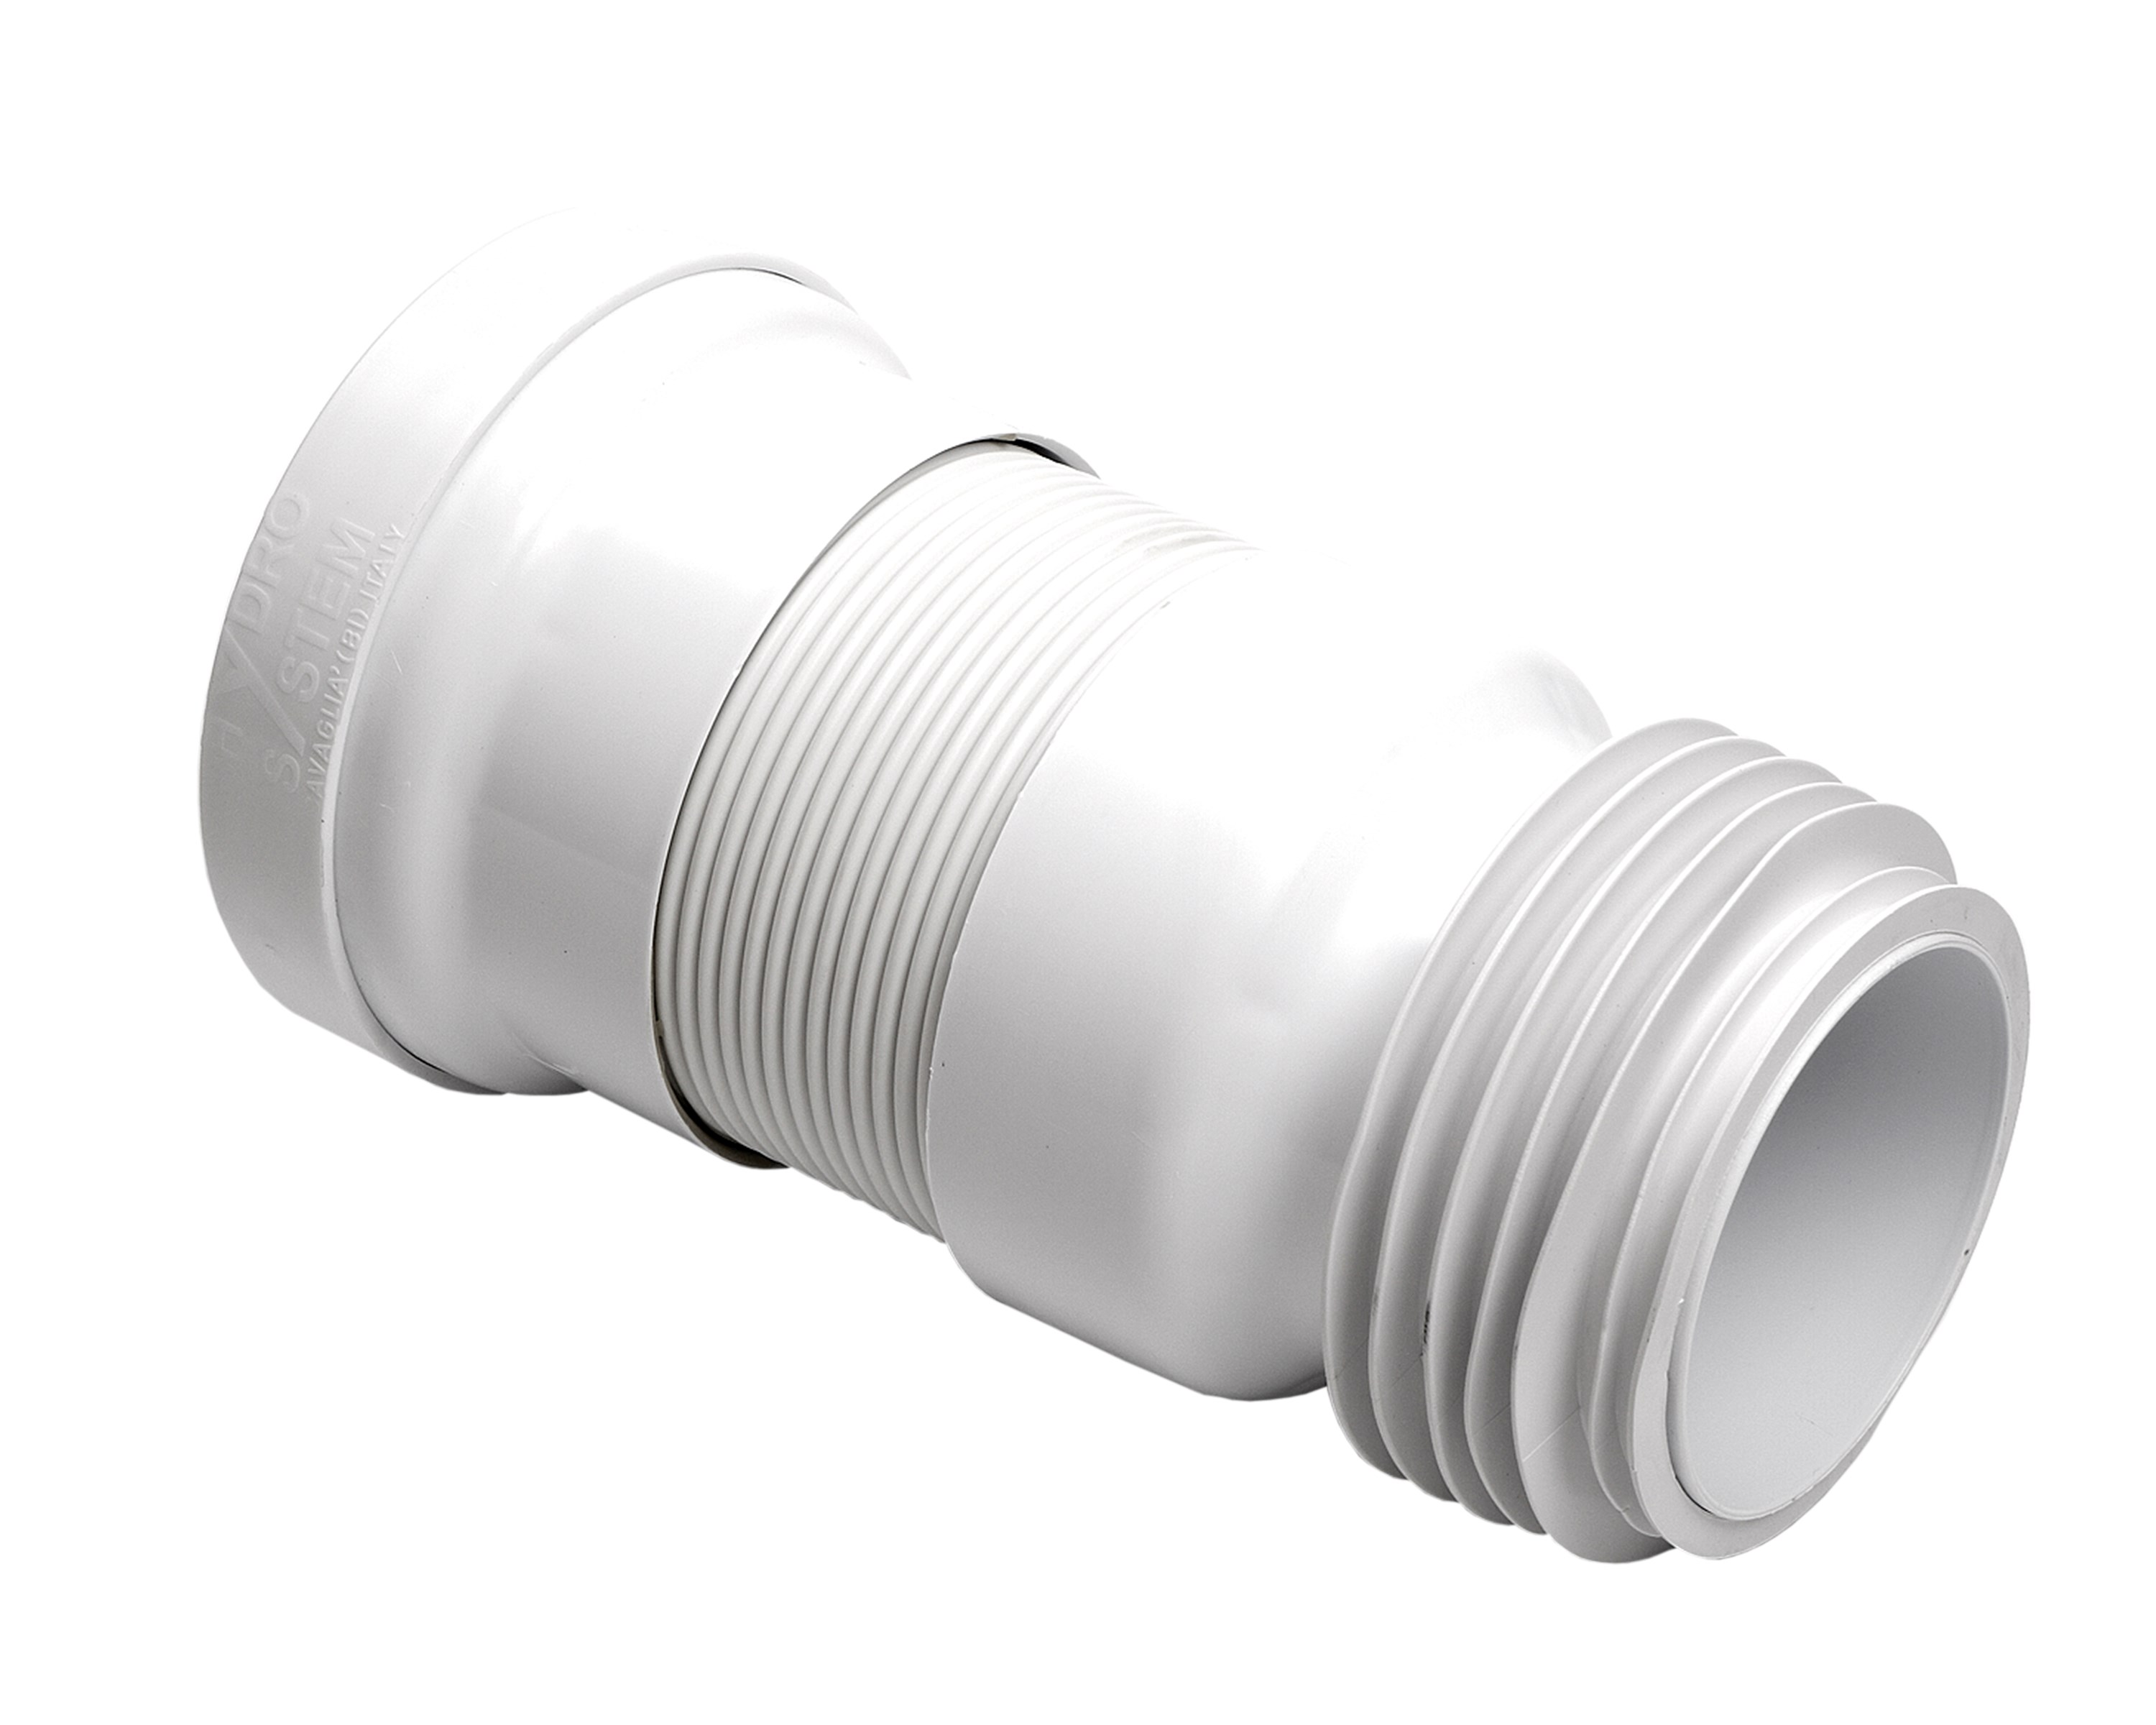 uel flexible pan connector sewer fittings. Black Bedroom Furniture Sets. Home Design Ideas